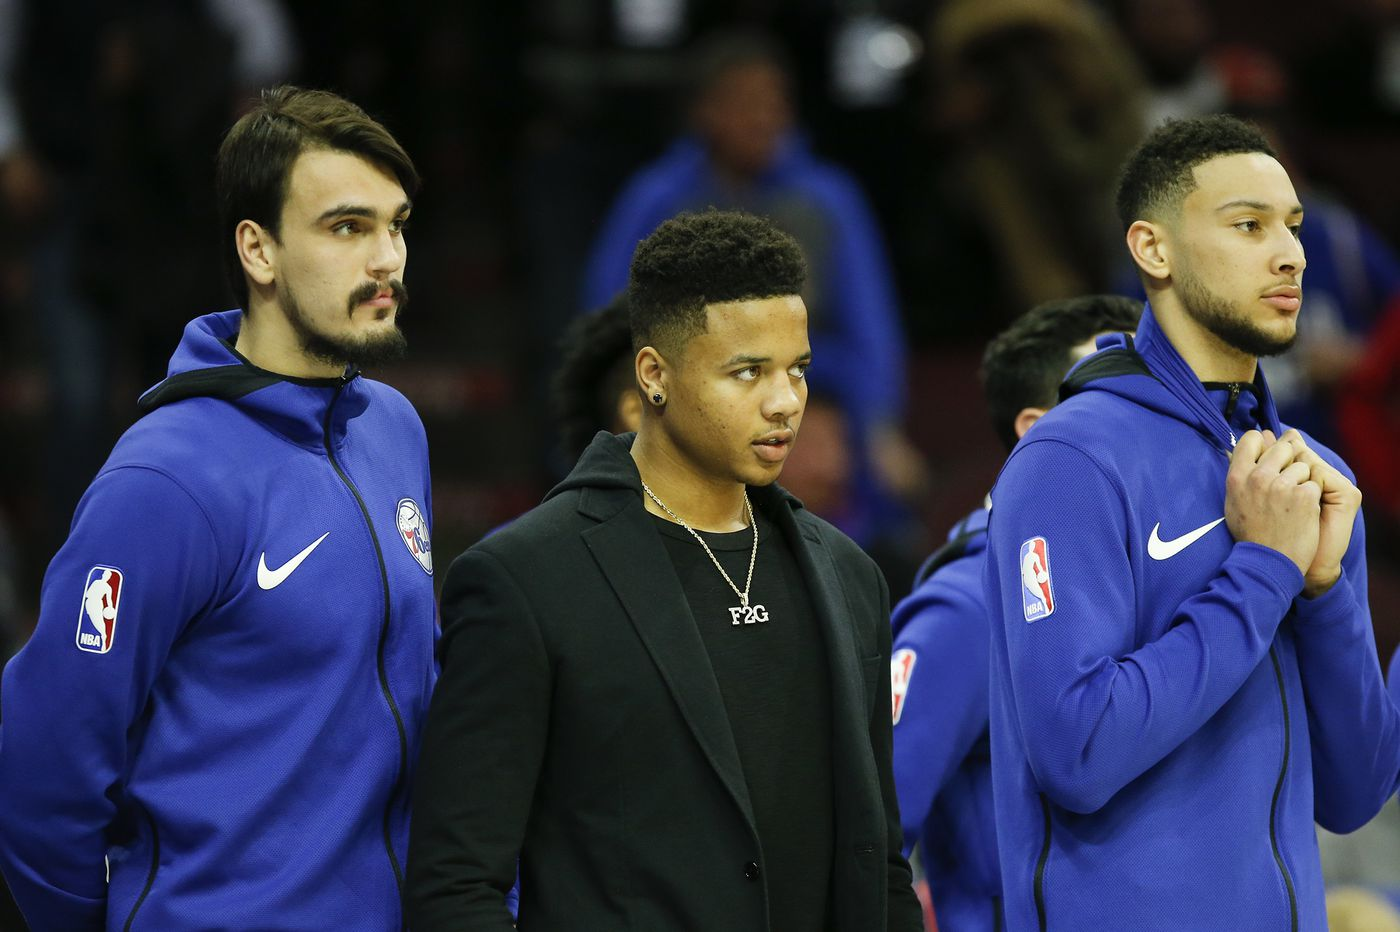 Sources: Sixers pick up options on Ben Simmons, Dario Saric, and Markelle Fultz